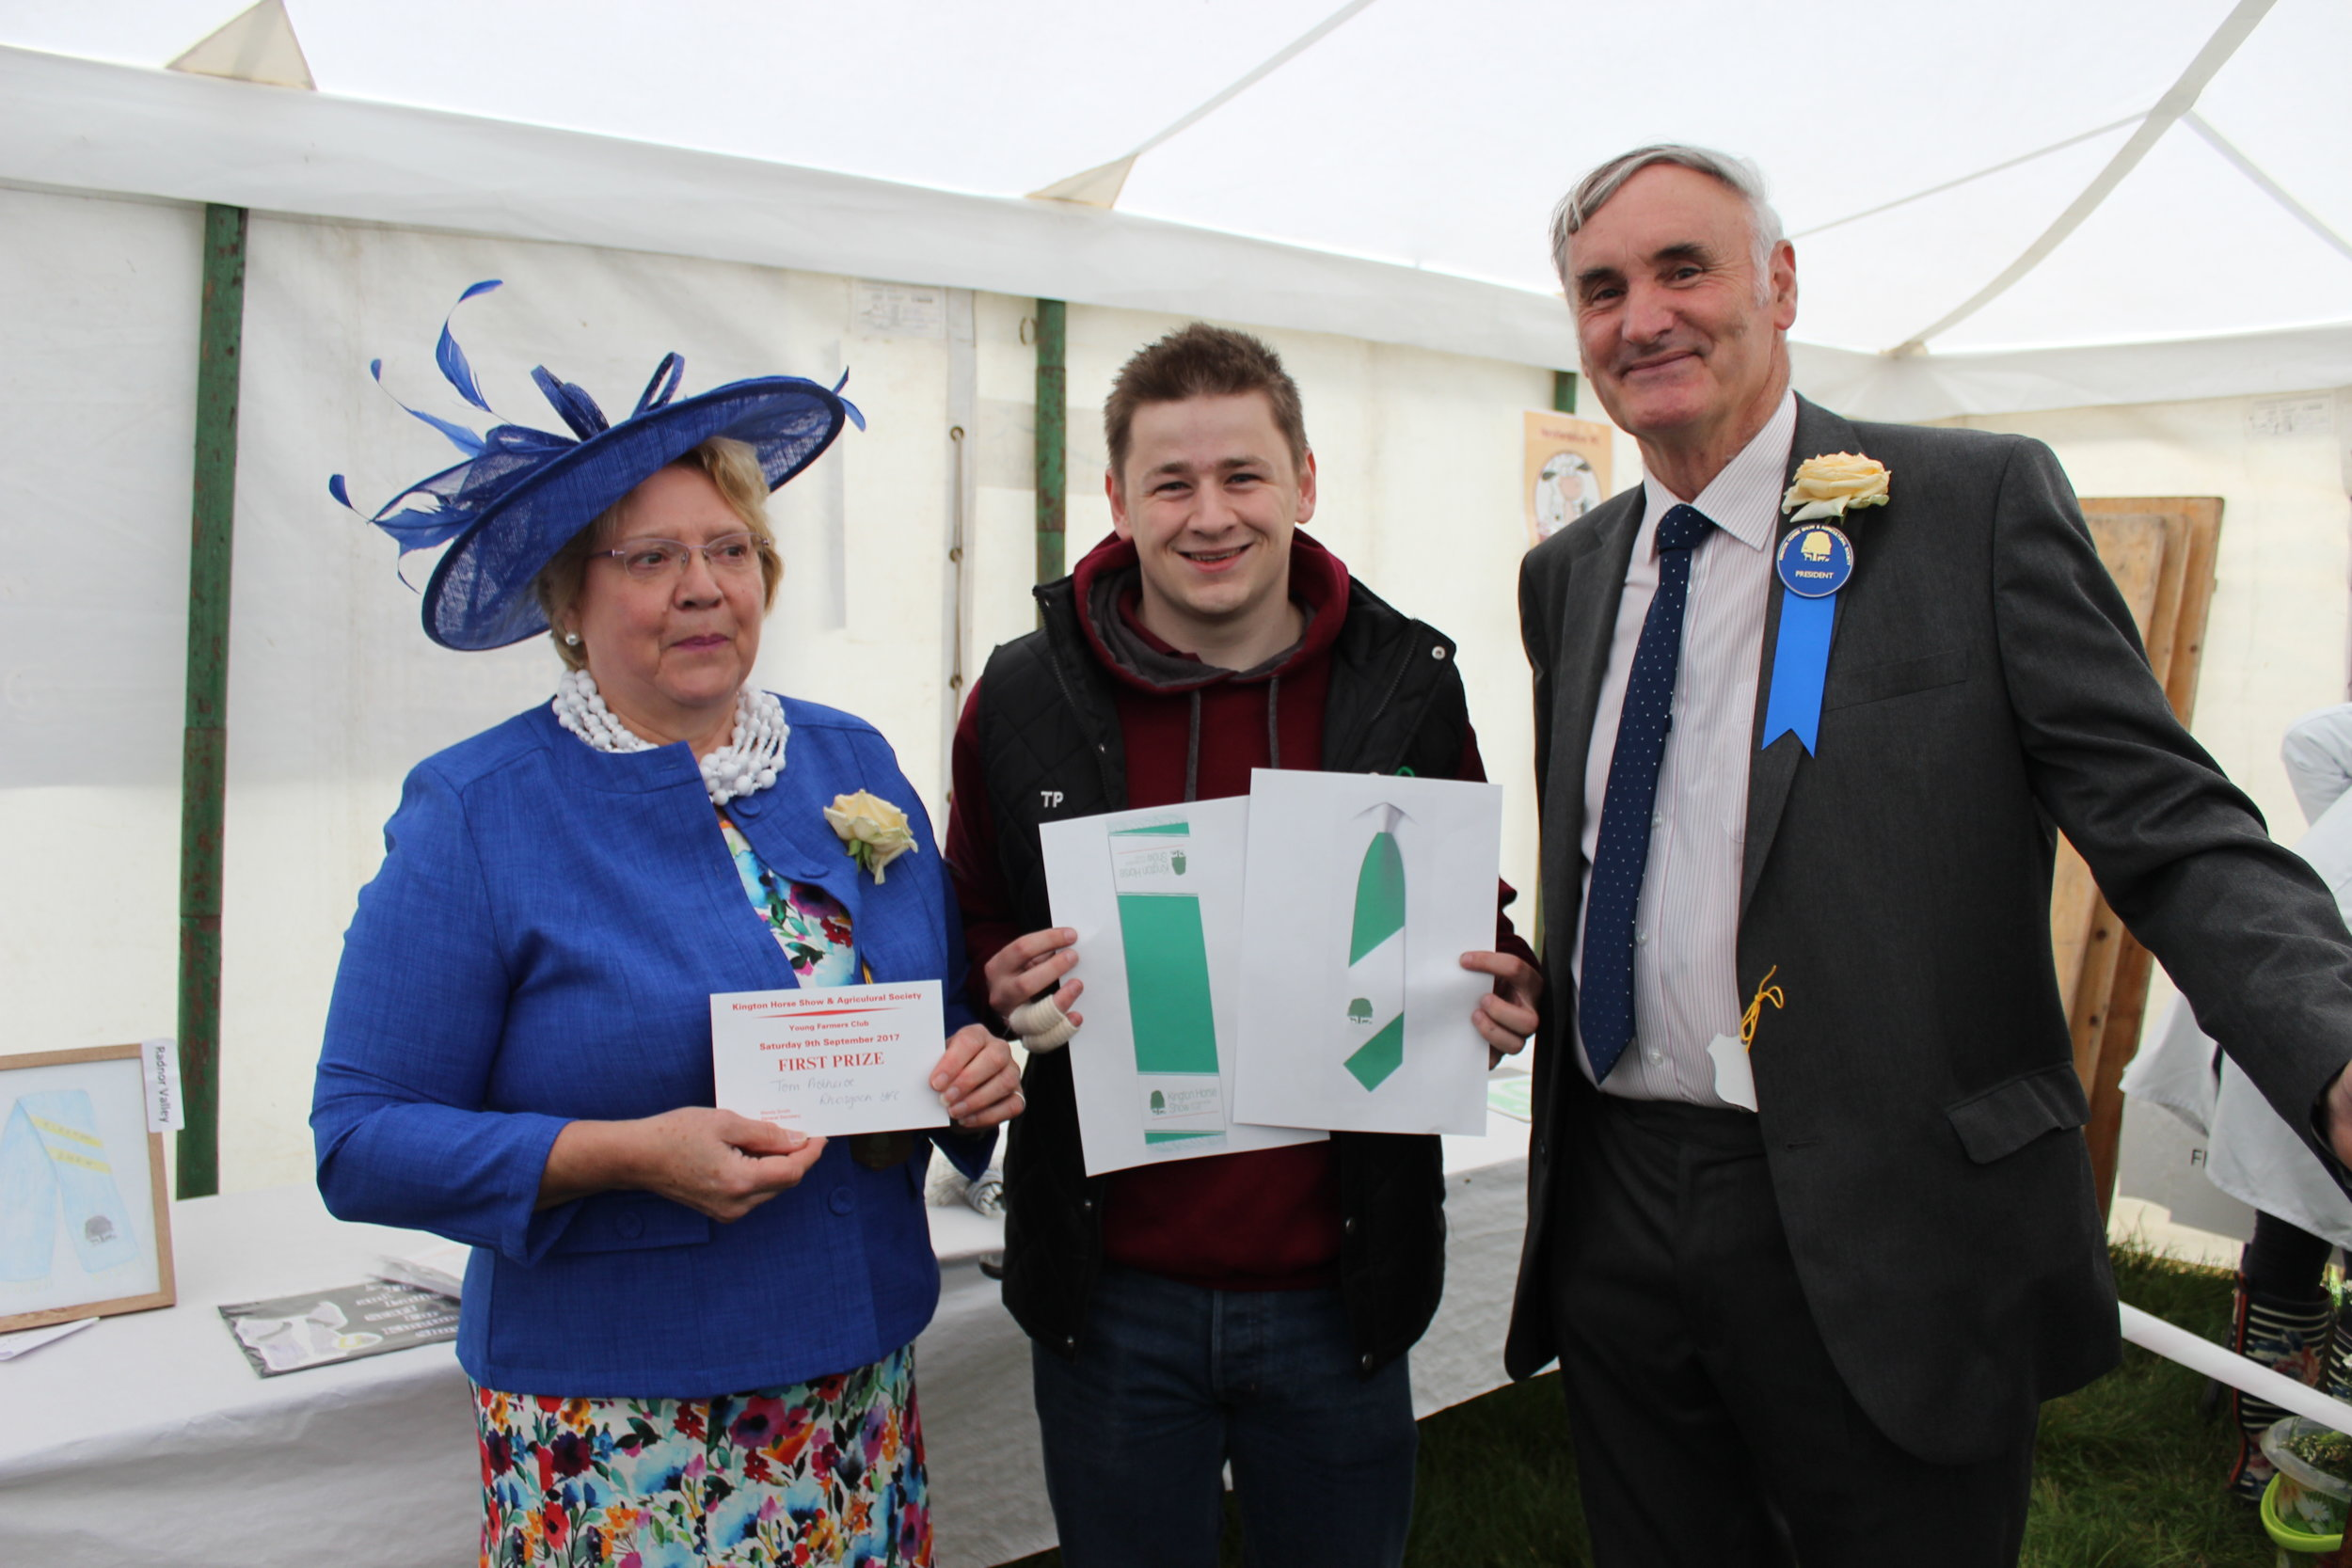 Tom Protheroe, Rhosgoch YFC winning the President's Challenge to design a tie and scarf for Kington Show Society which will be produced ready for next year's Show - Well Done Tom!